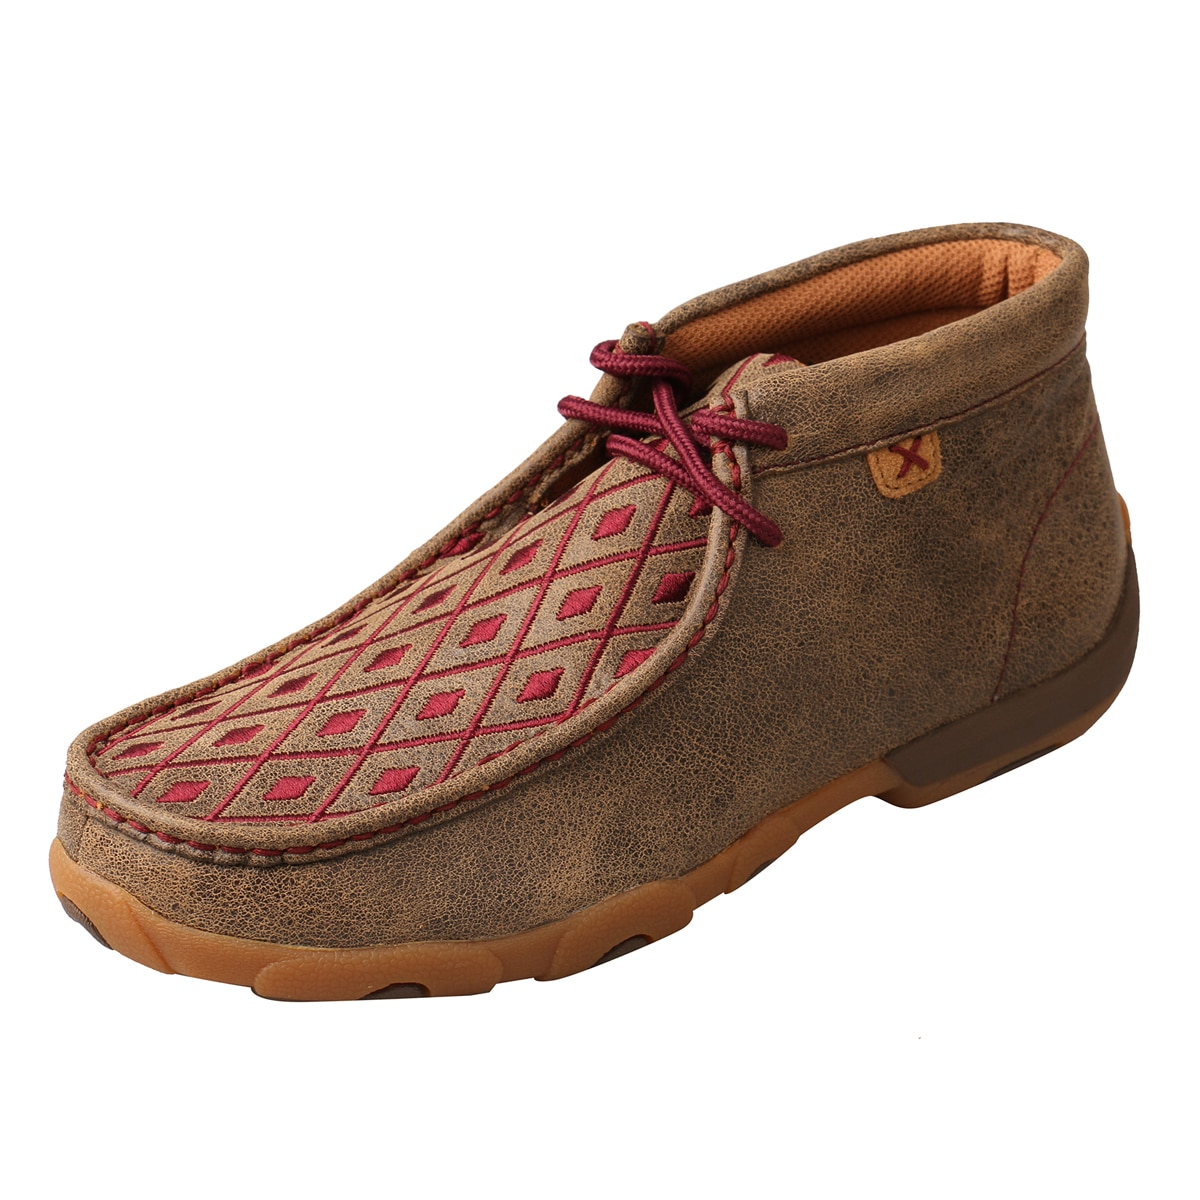 Embroidered Driving Moccasins